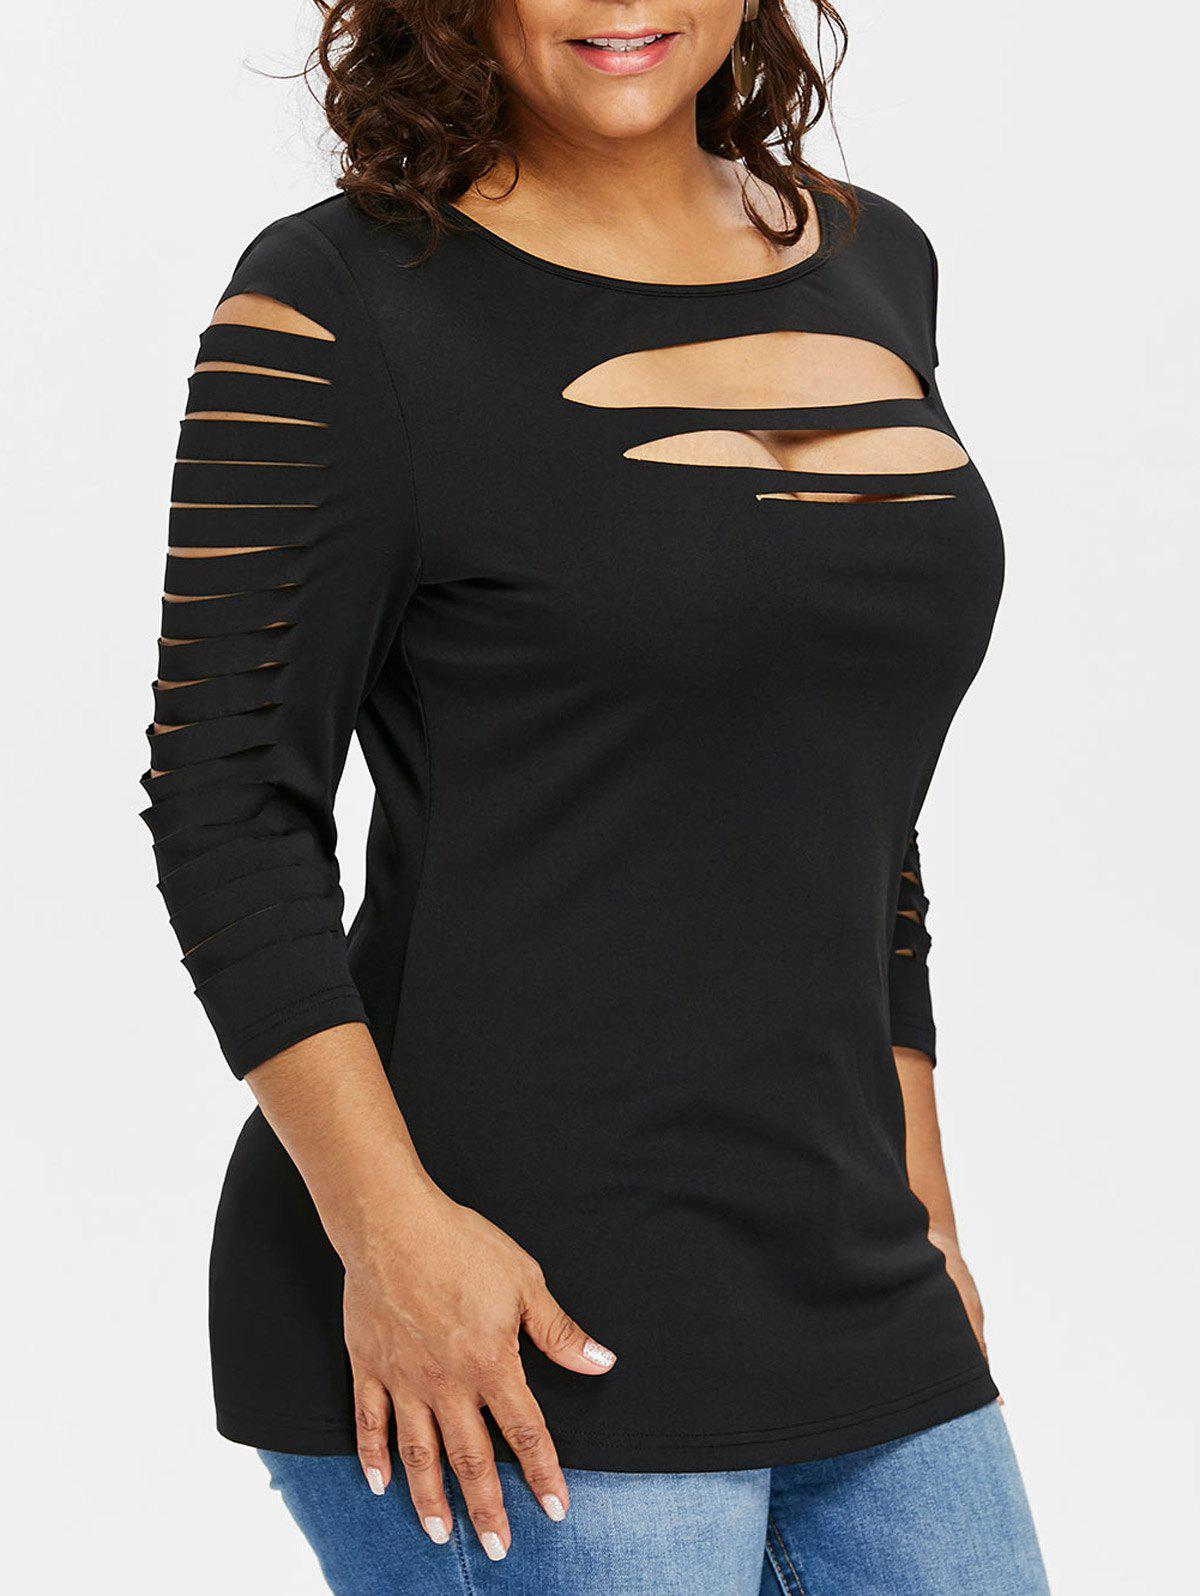 Plus Size Ladder Ripped Cut Front T-shirt - BLACK 3X